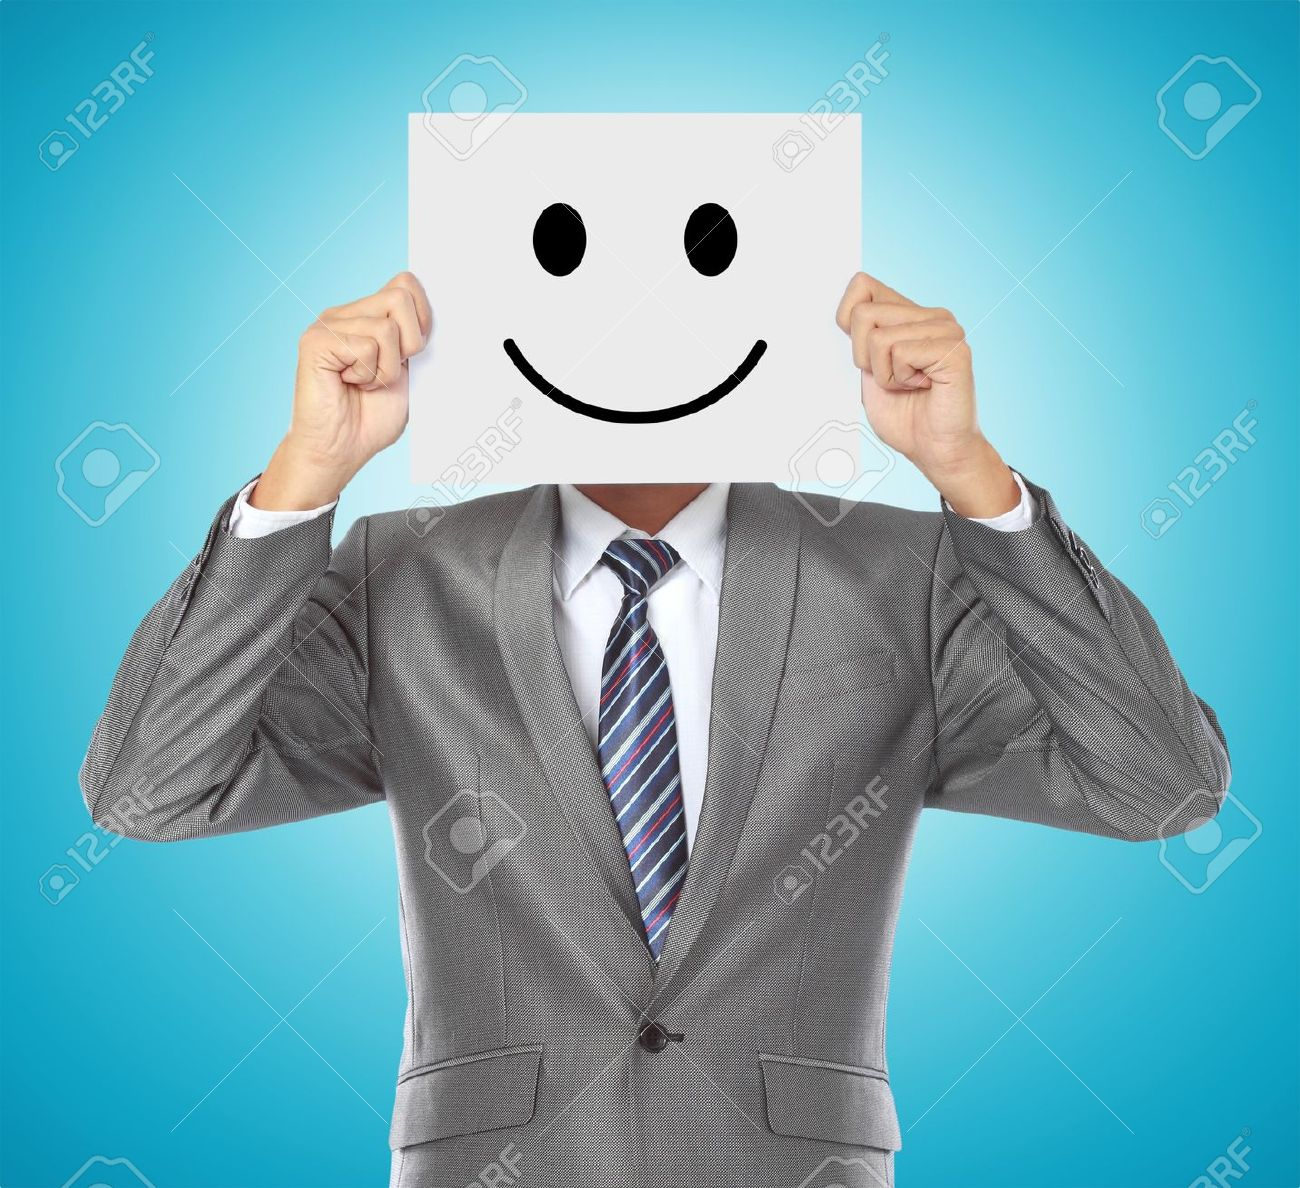 businessman covering his face with smiling mask on blue background Stock Photo - 14619480